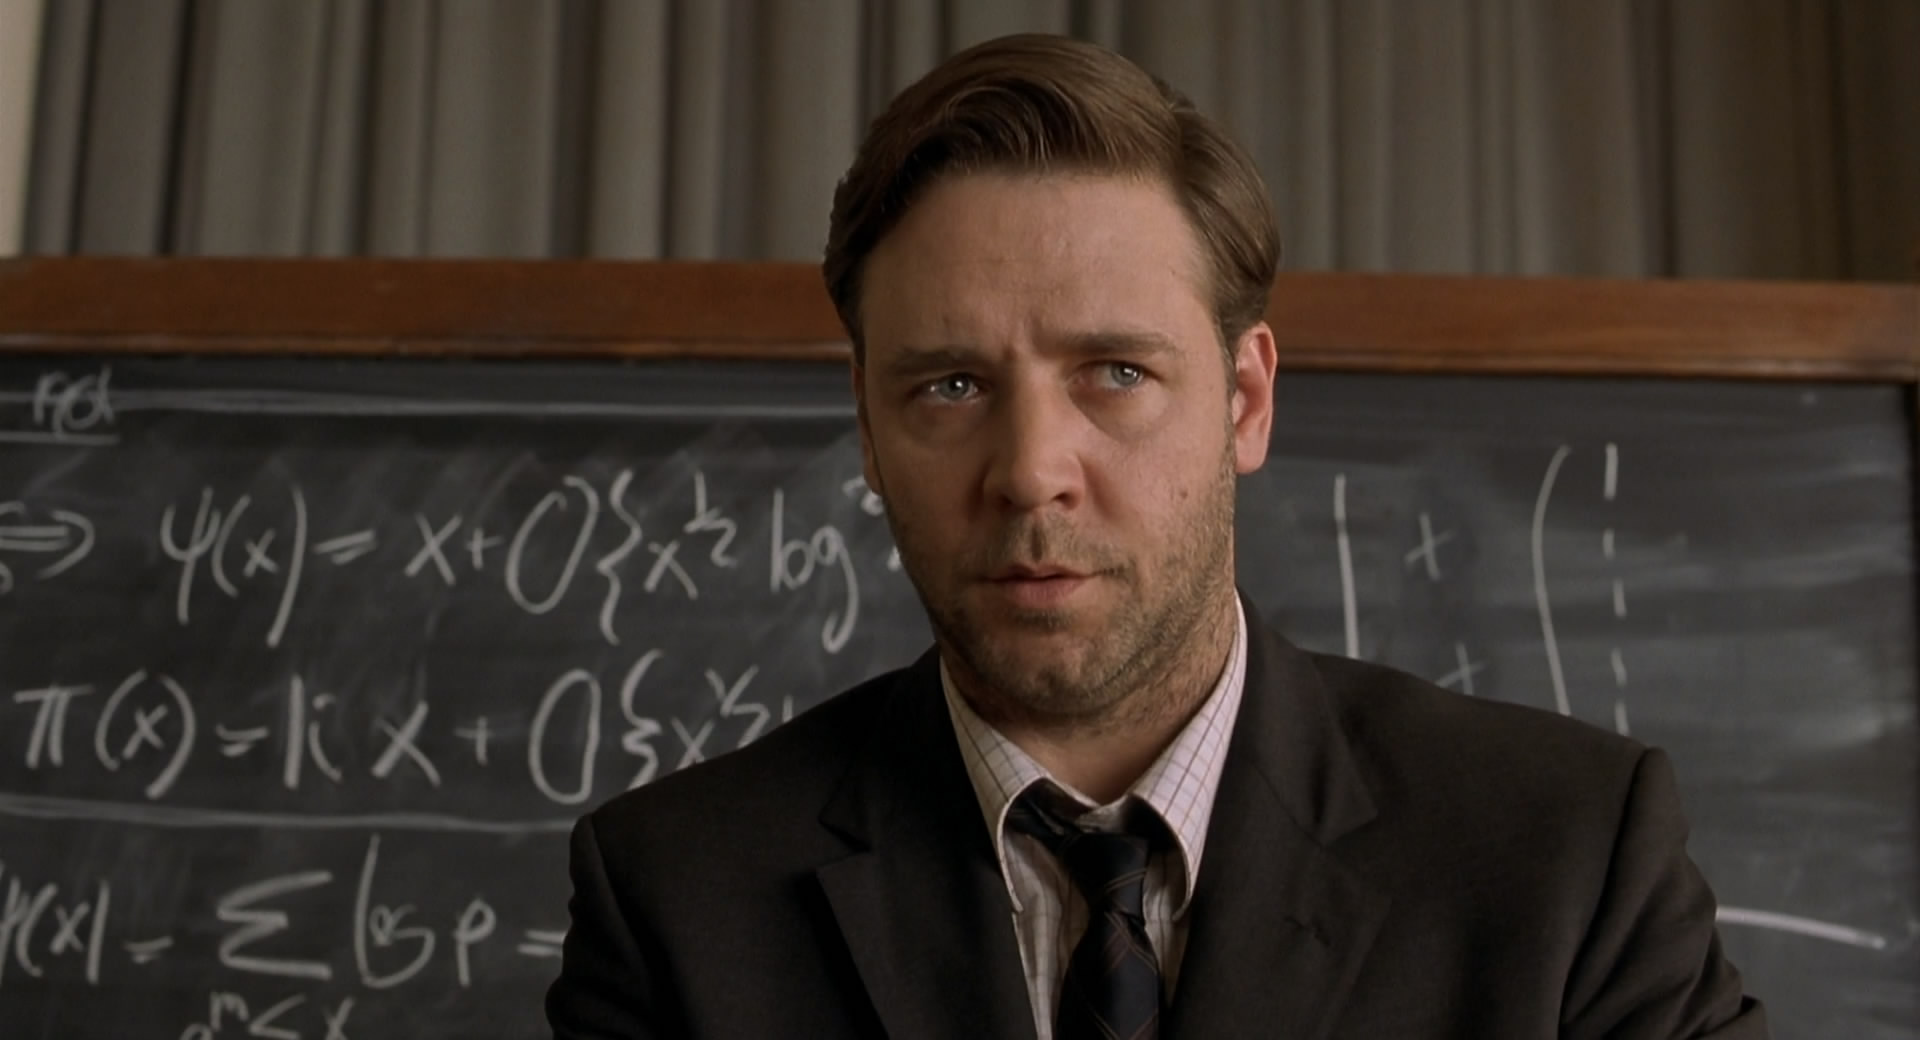 a review of the movie a beautiful mind A beautiful mind is one such picture that divides opinions, although exemplary made and well put together, it doesn't adhere quite to the facts of nash's life-it's an interpretation that smooths out the drama by way of delivering a safe and watchable biography.